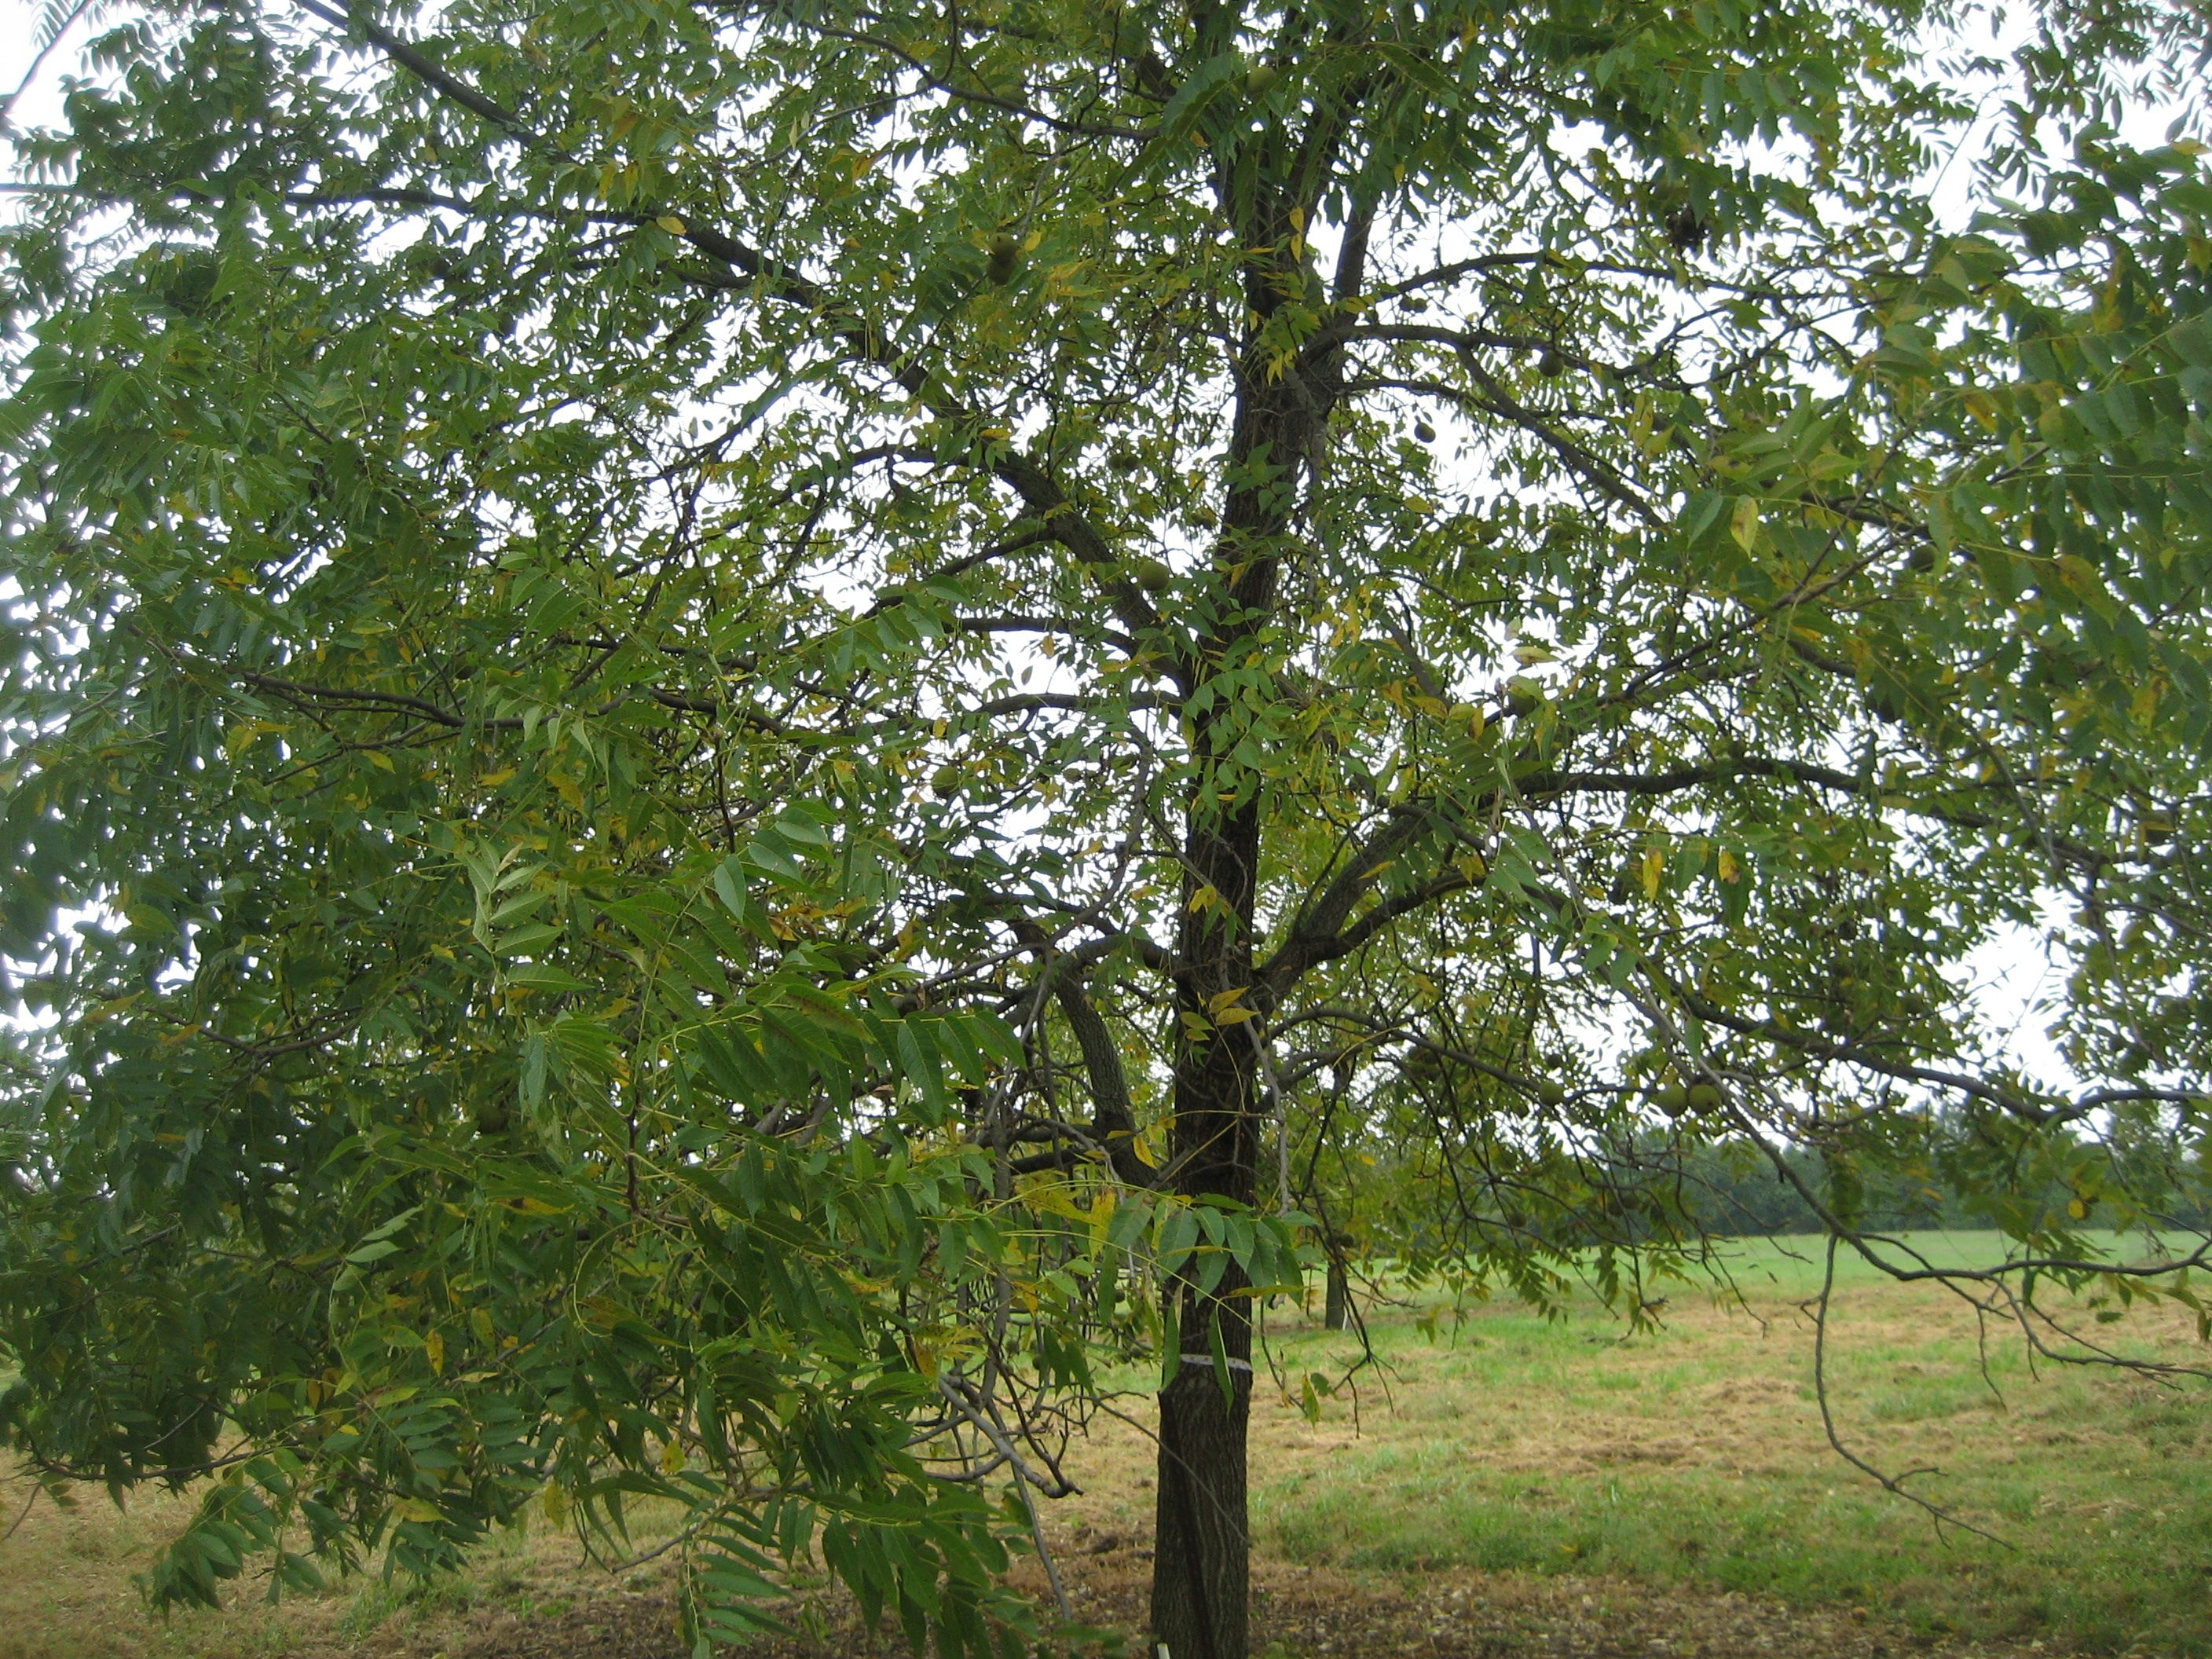 Black Walnut Tree Images, Stock Photos Vectors Shutterstock Young black walnut tree pictures